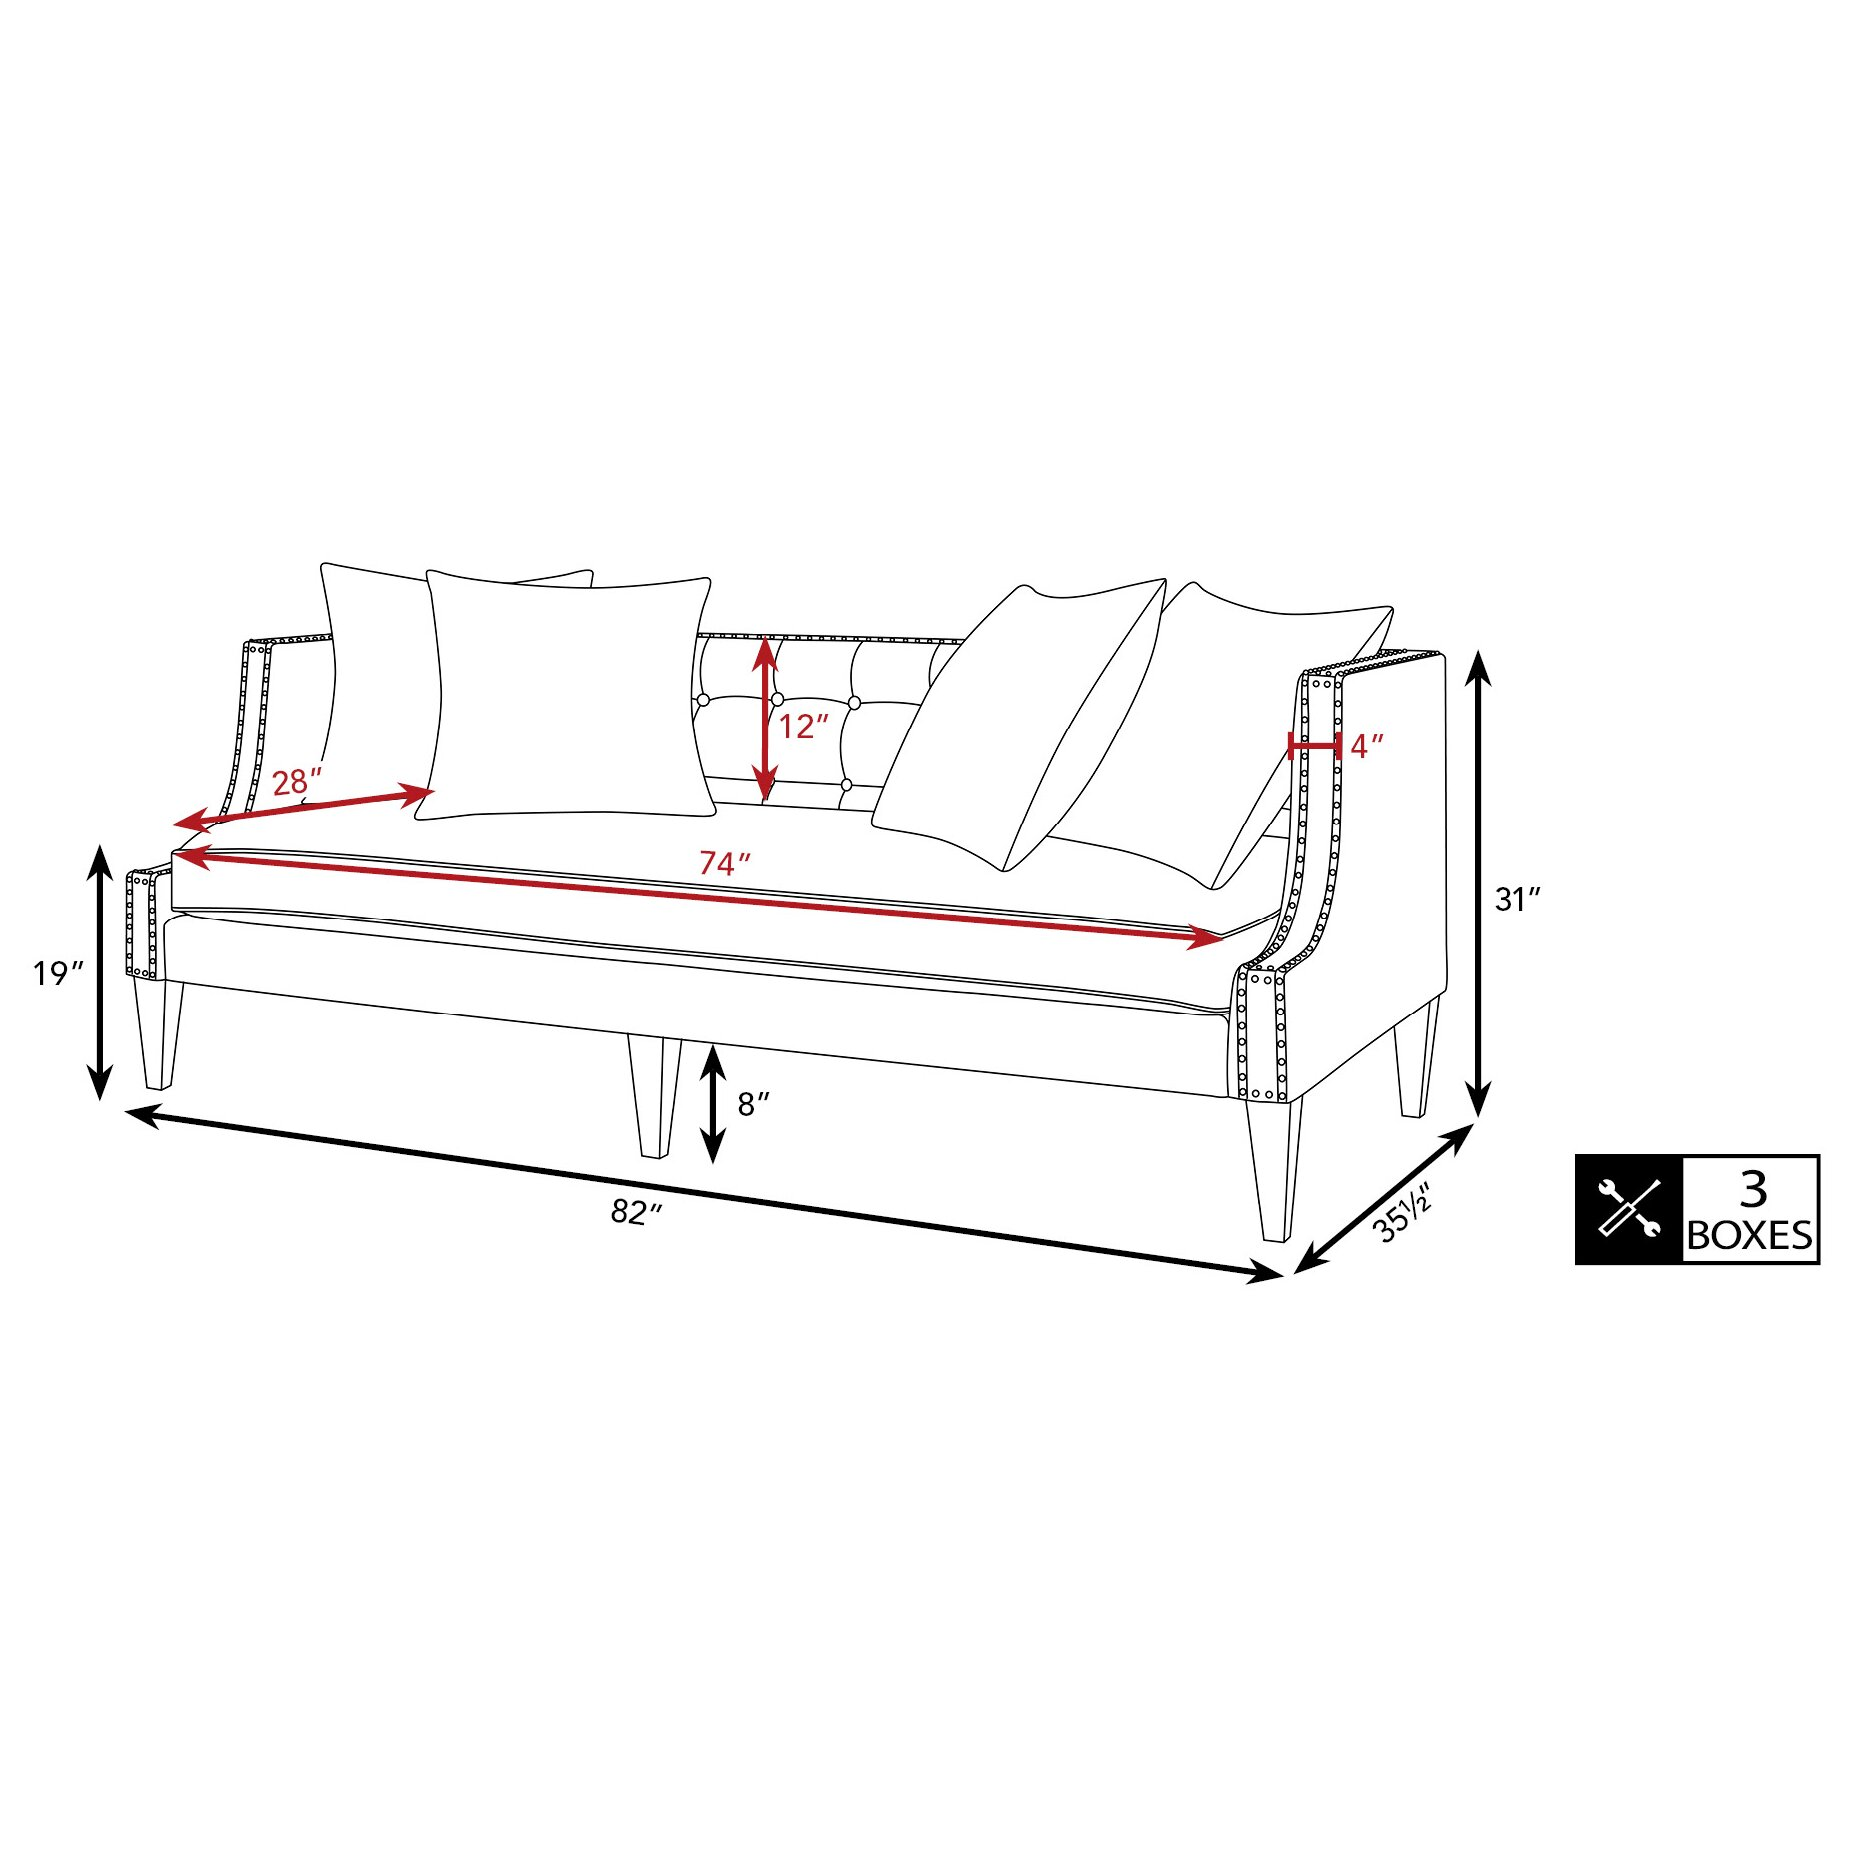 Bed Clipart 1032 furthermore Novella Series 14 Set Of 2 Chairs In Red Color By Nilkamal 1530479 likewise SEMA SOFA SET as well Modern Accessories Halo Modern L s Modern Furniture Store Ct Modern Chendaliers 475 as well Furniture Drawings Beds. on sofa beds for kids